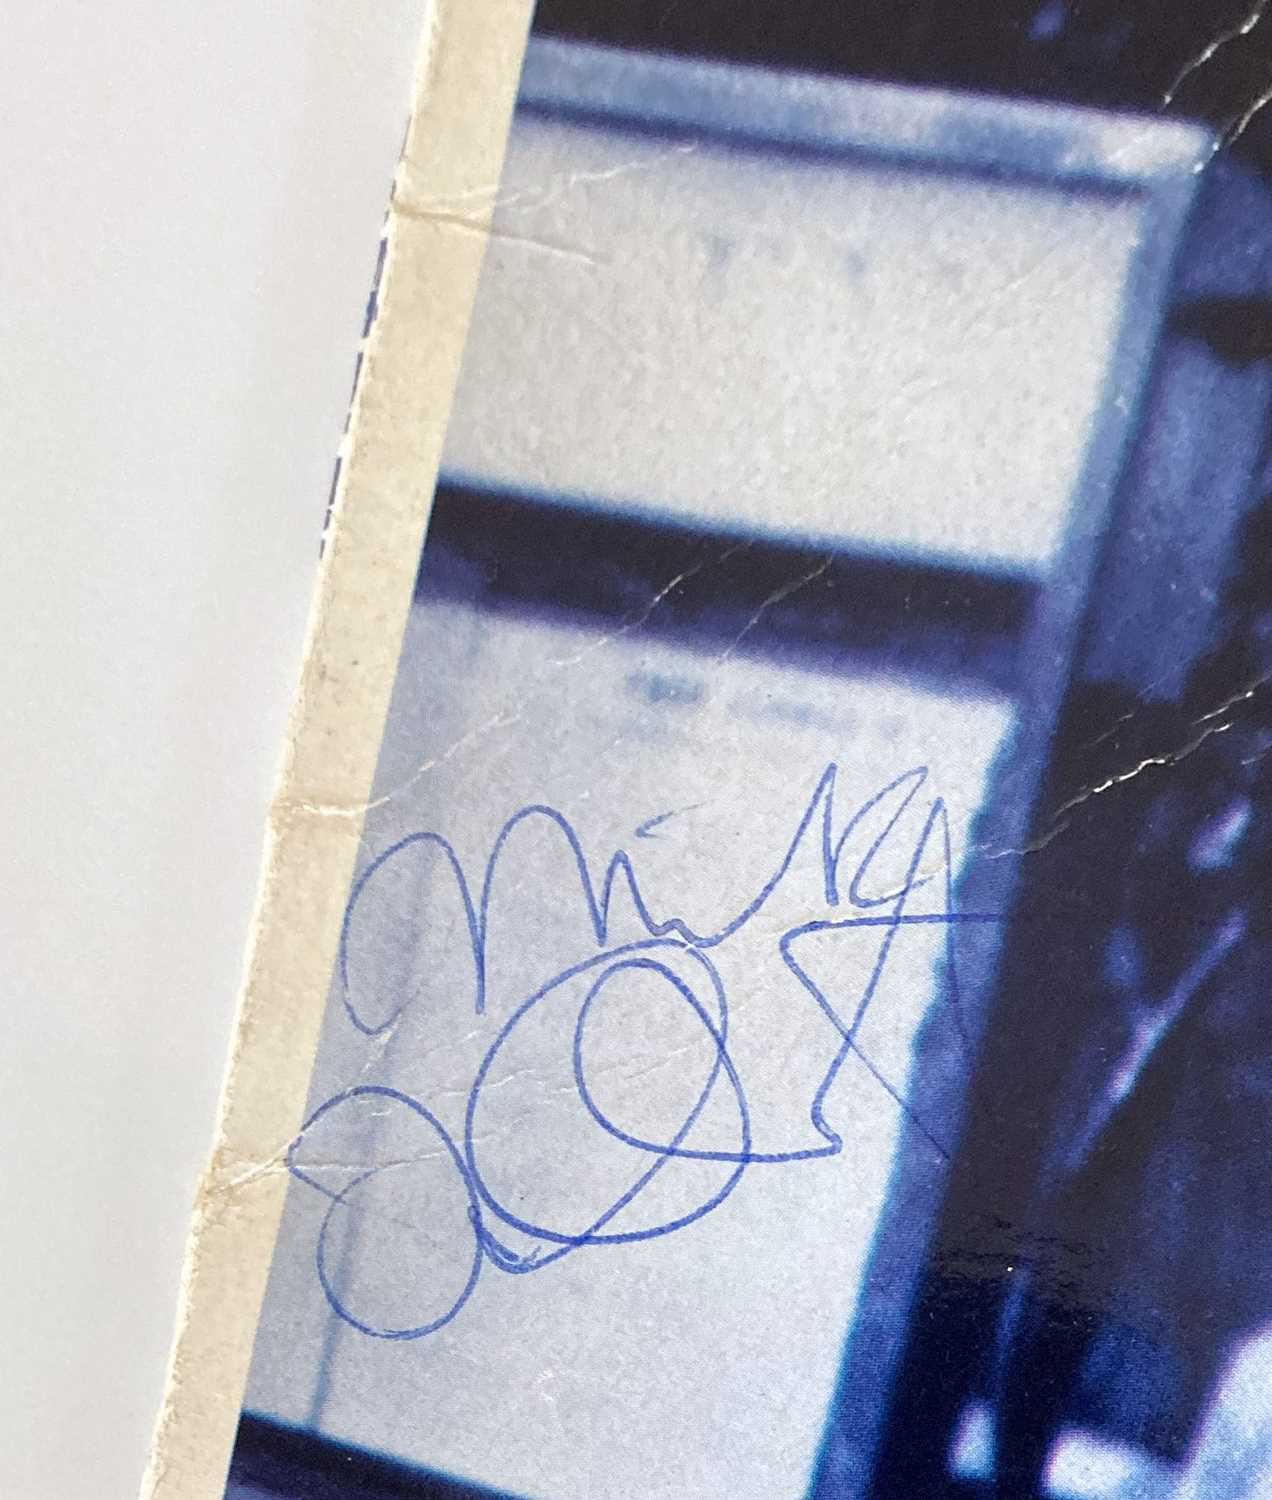 THE STYLE COUNCIL - SIGNED LPS. - Image 4 of 8